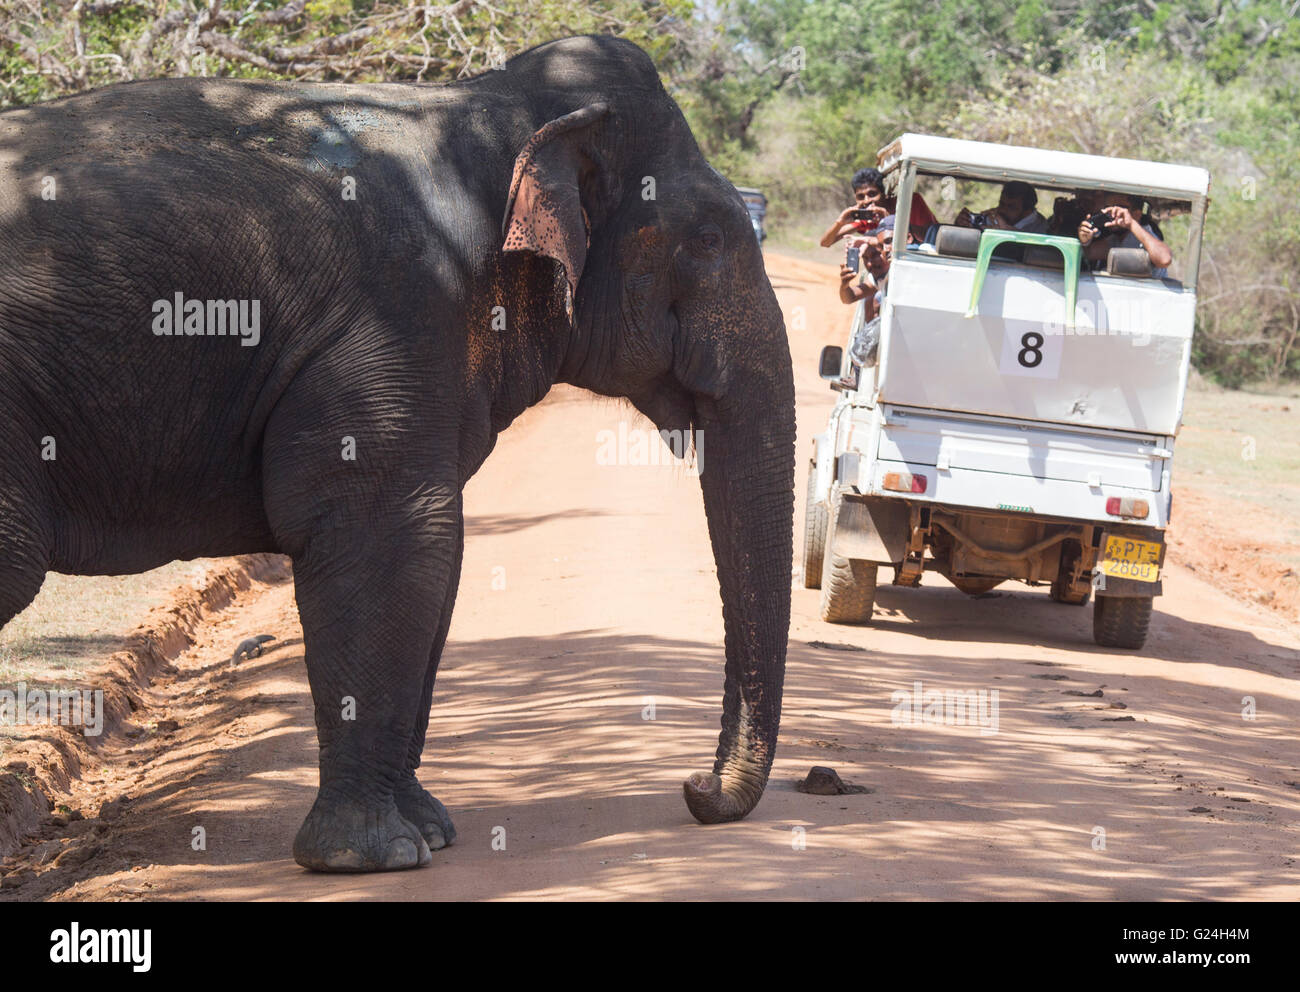 Yala National Park , Sri Lanka. An elephant is watched by tourists in a van - Stock Image